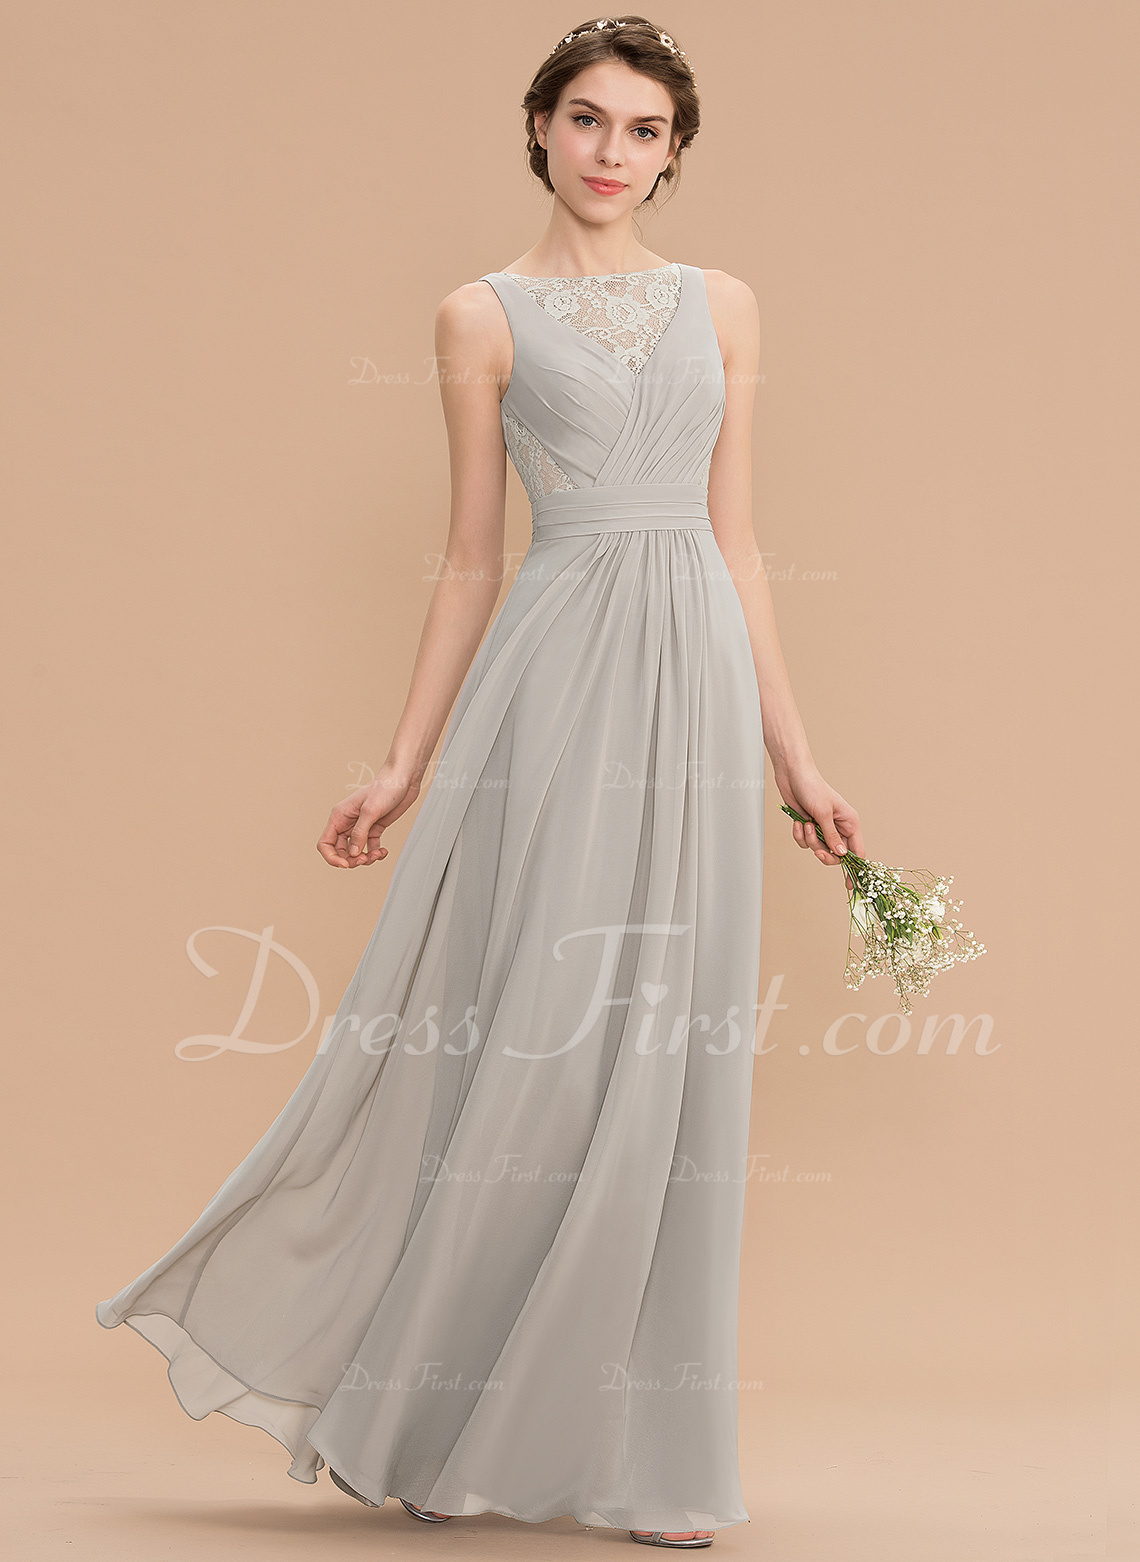 a86c2089829 A-Line Scoop Neck Floor-Length Chiffon Lace Bridesmaid Dress With Ruffle   176757